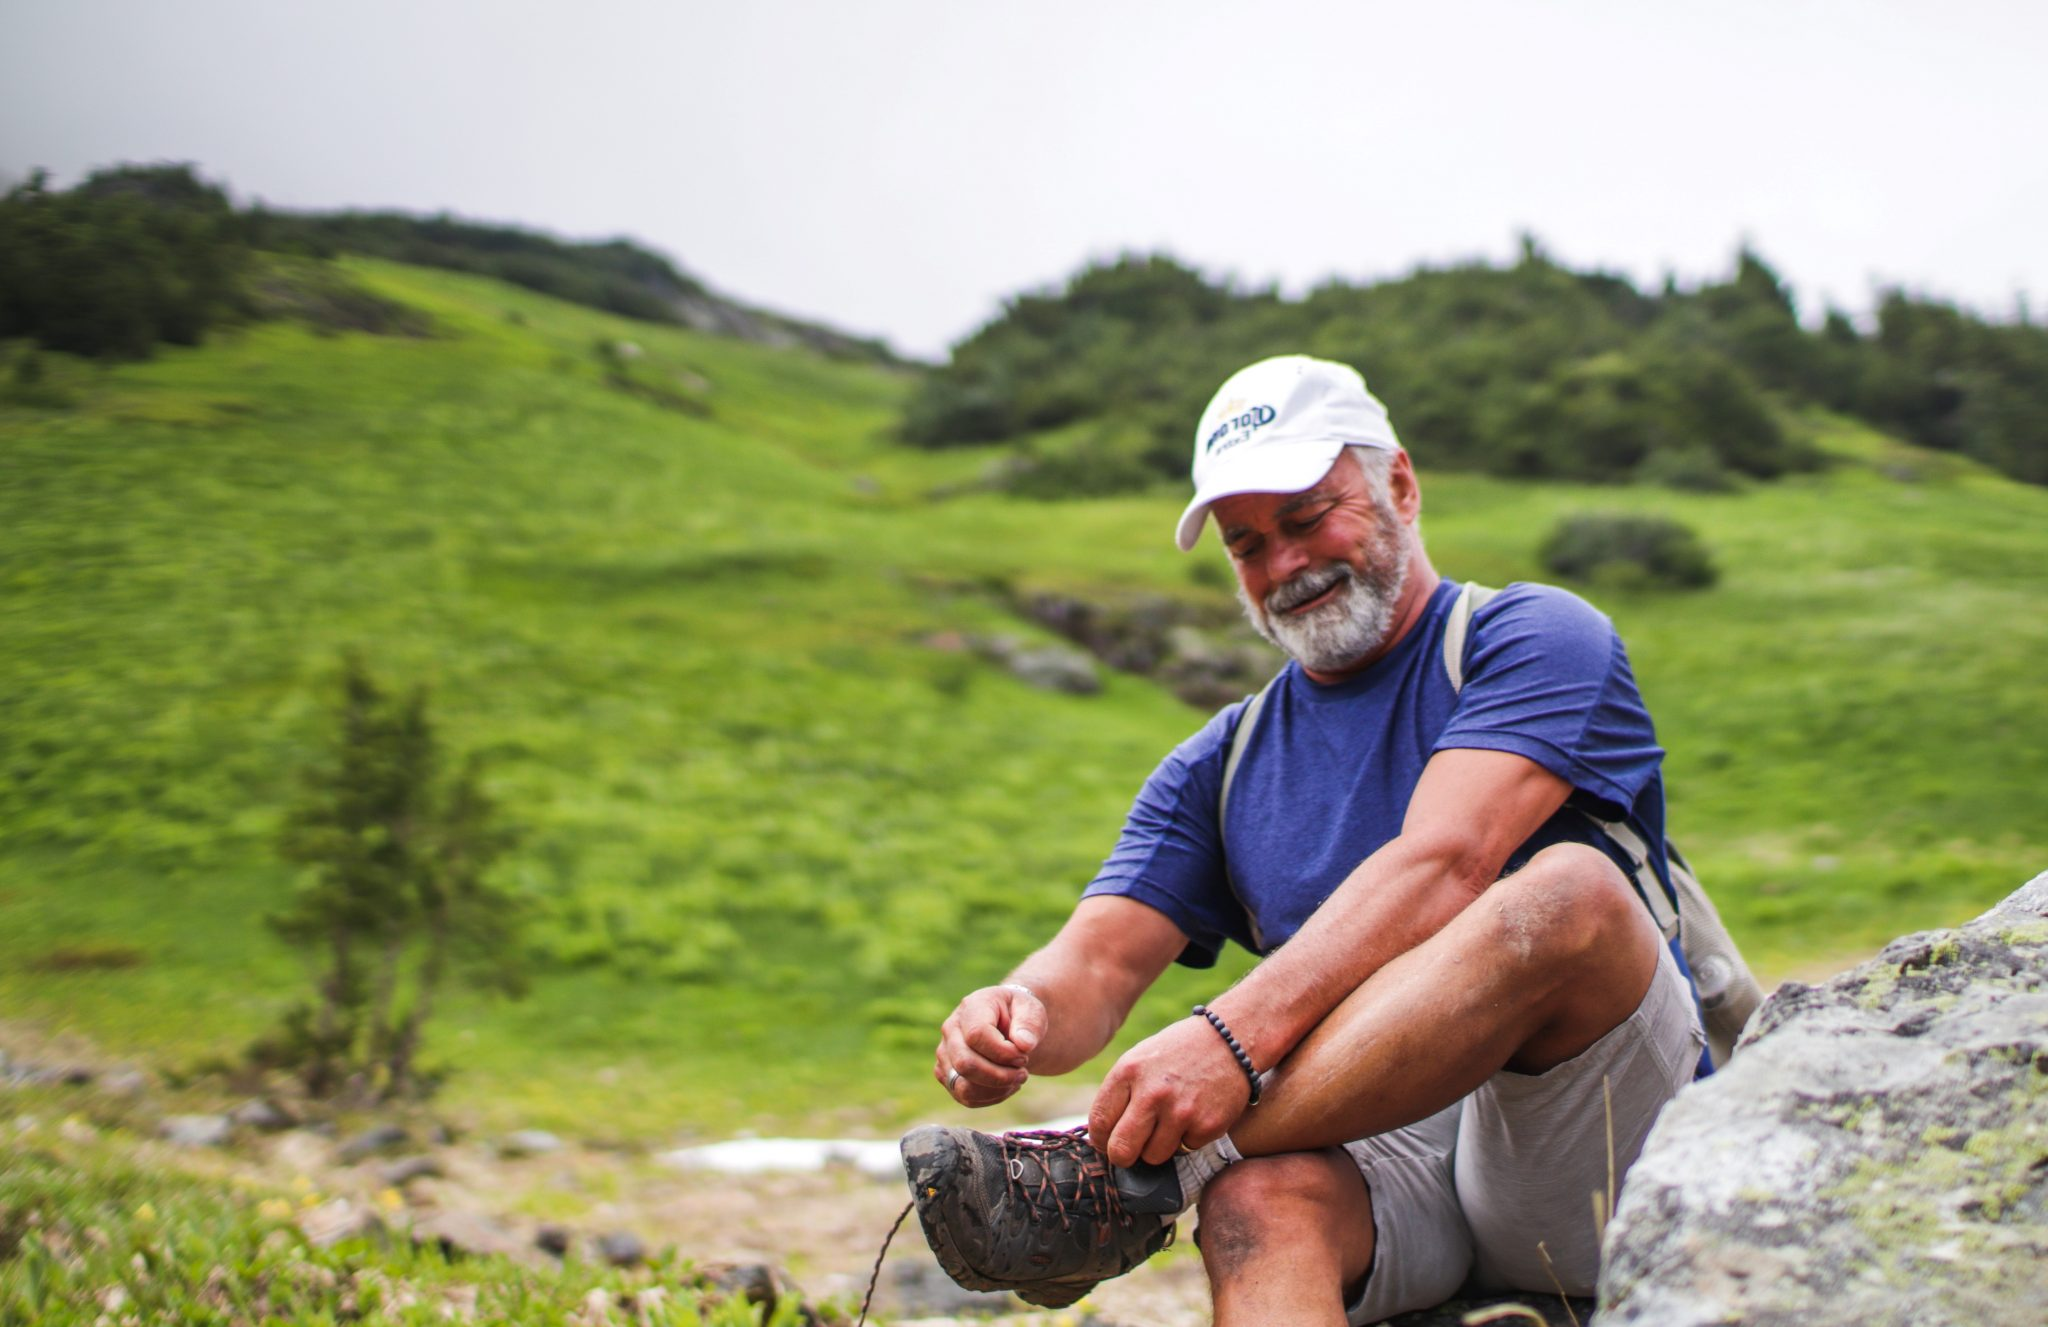 A middle aged man pauses to tie his shoe on a hike in a hilly, green landscape